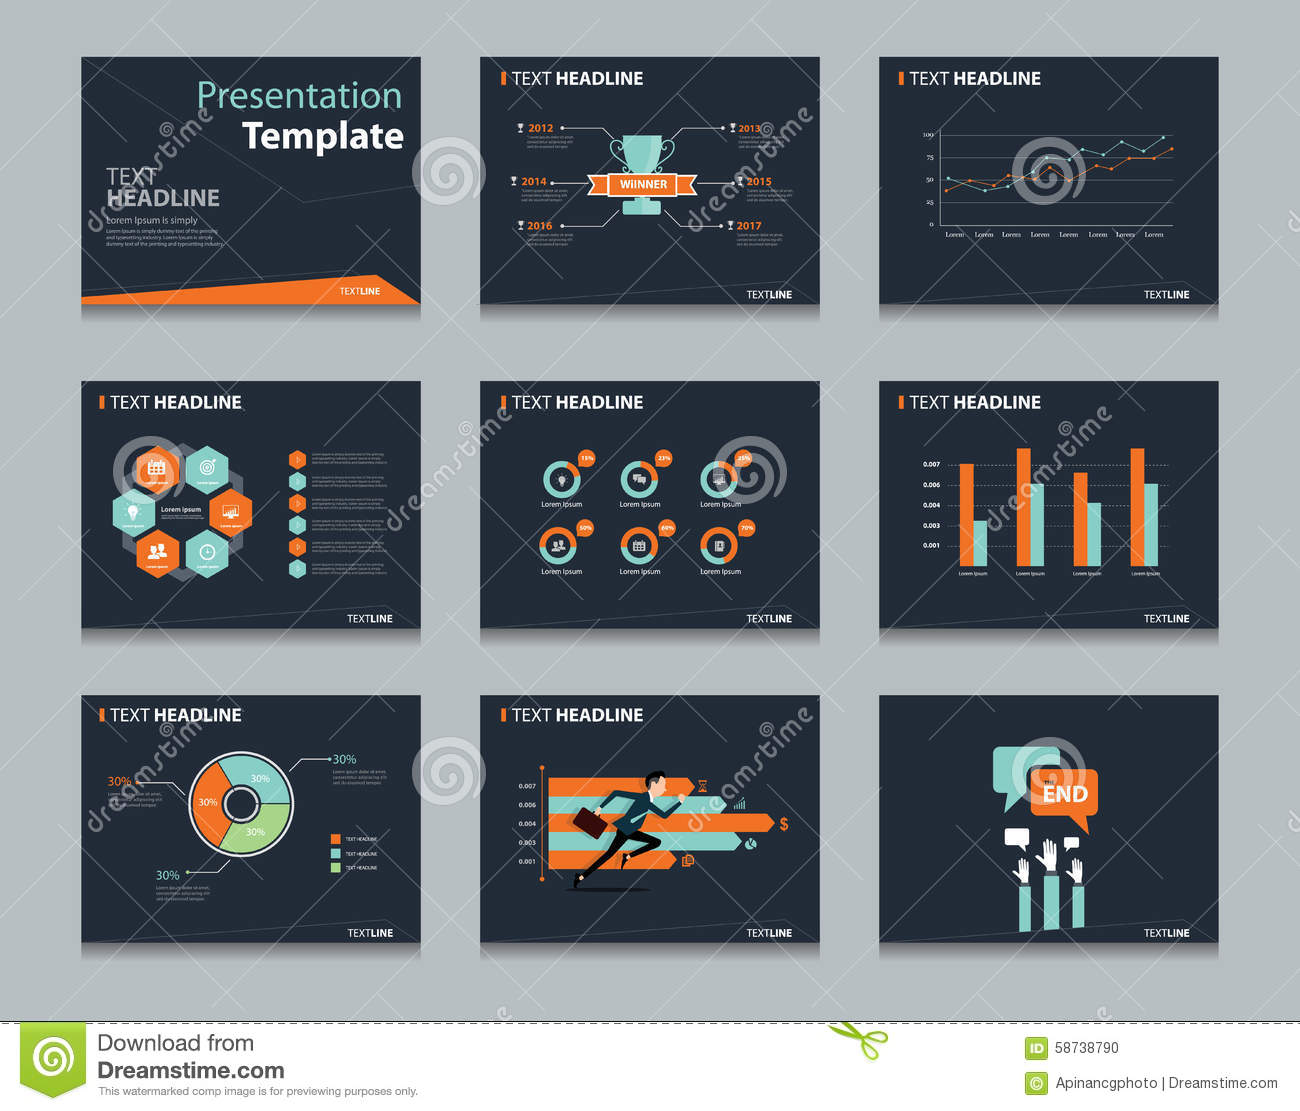 Business presentation and powerpoint template slides background black infographic powerpoint template design backgrounds business presentation template set stock photo flashek Choice Image